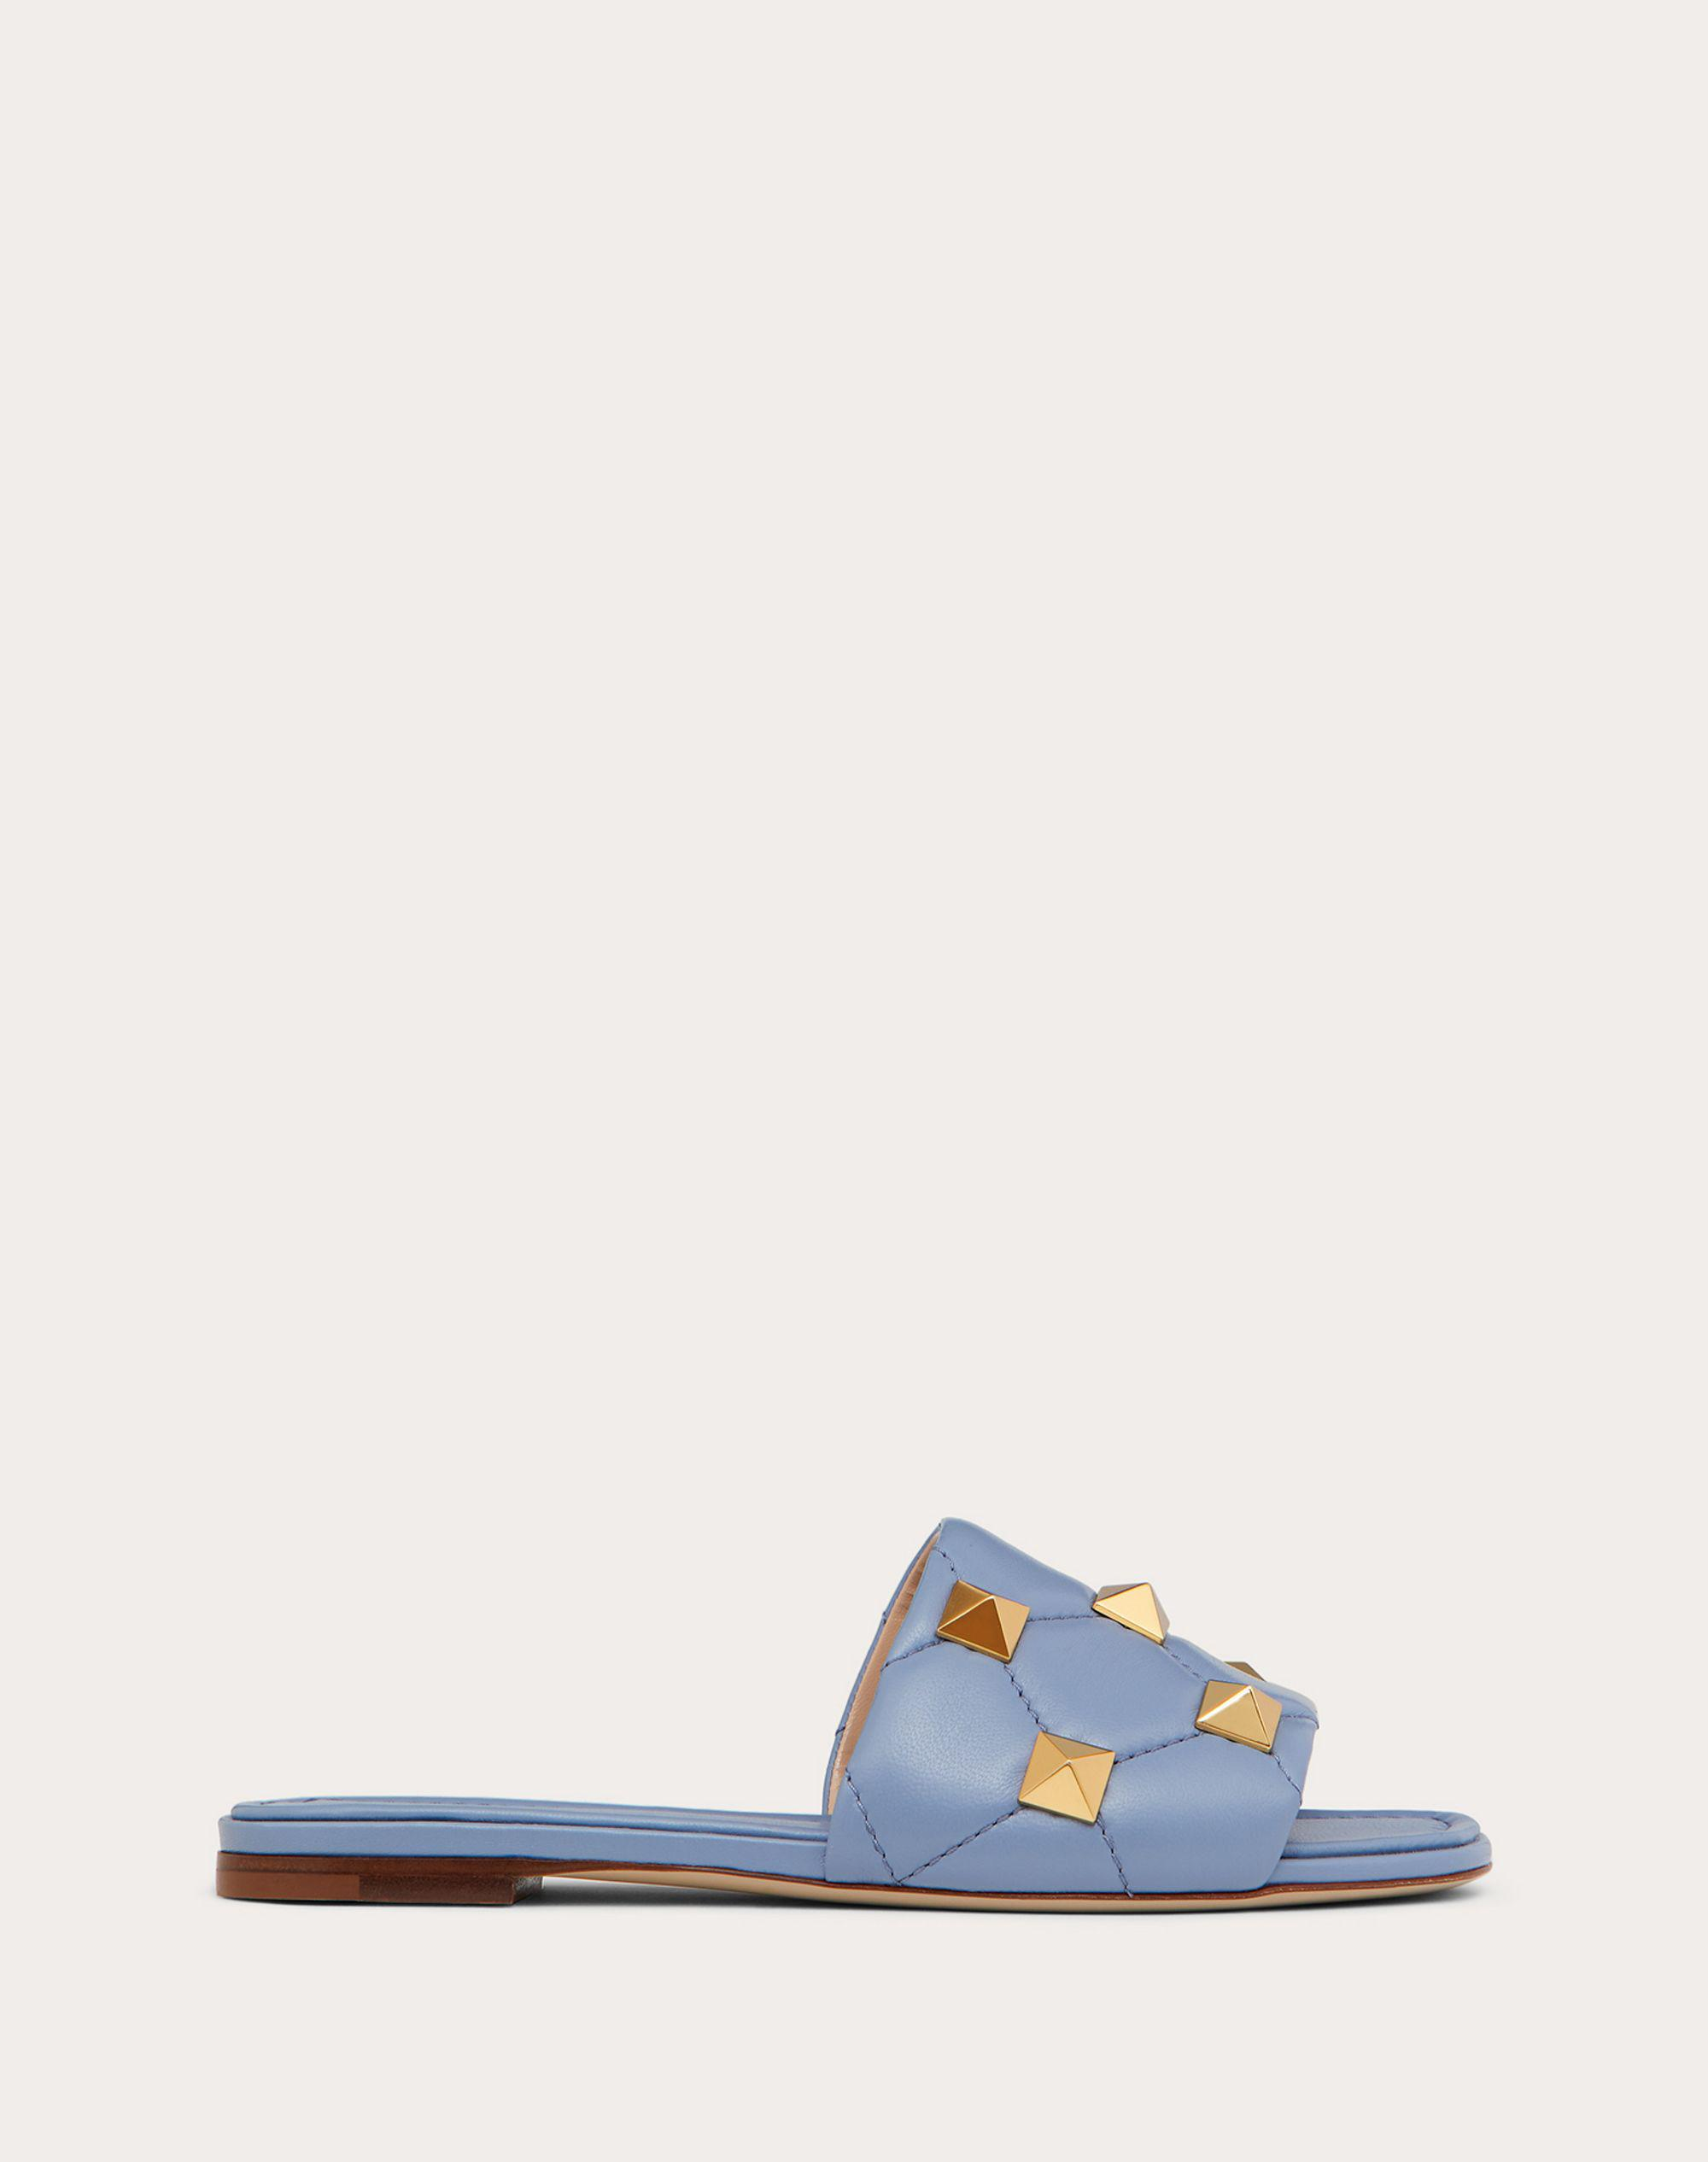 ROMAN STUD FLAT SLIDE SANDAL IN QUILTED NAPPA